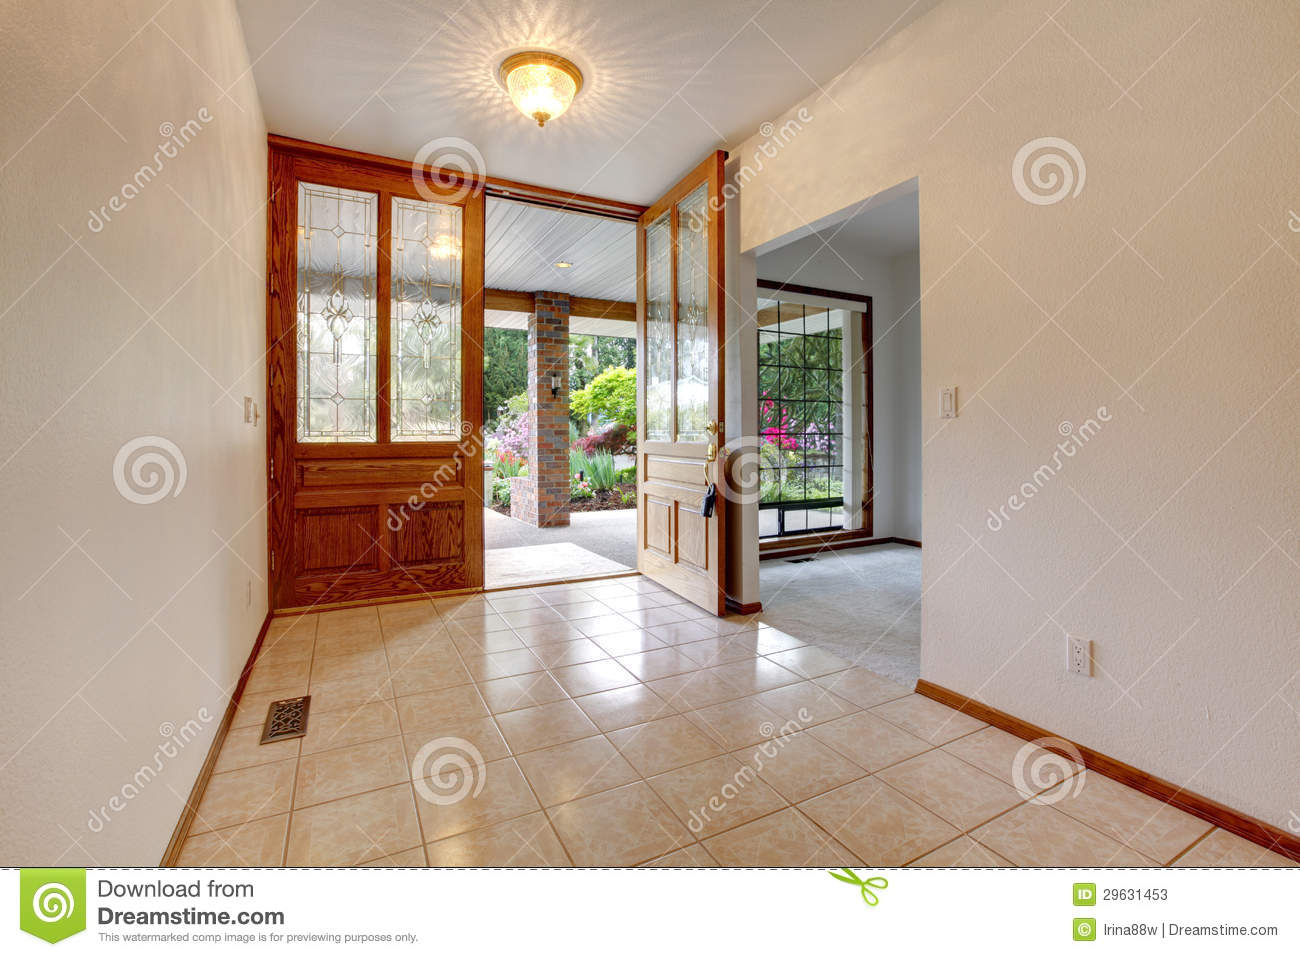 Inside front door clipart - Empty Front Entrance With Open Door Home Interior Stock